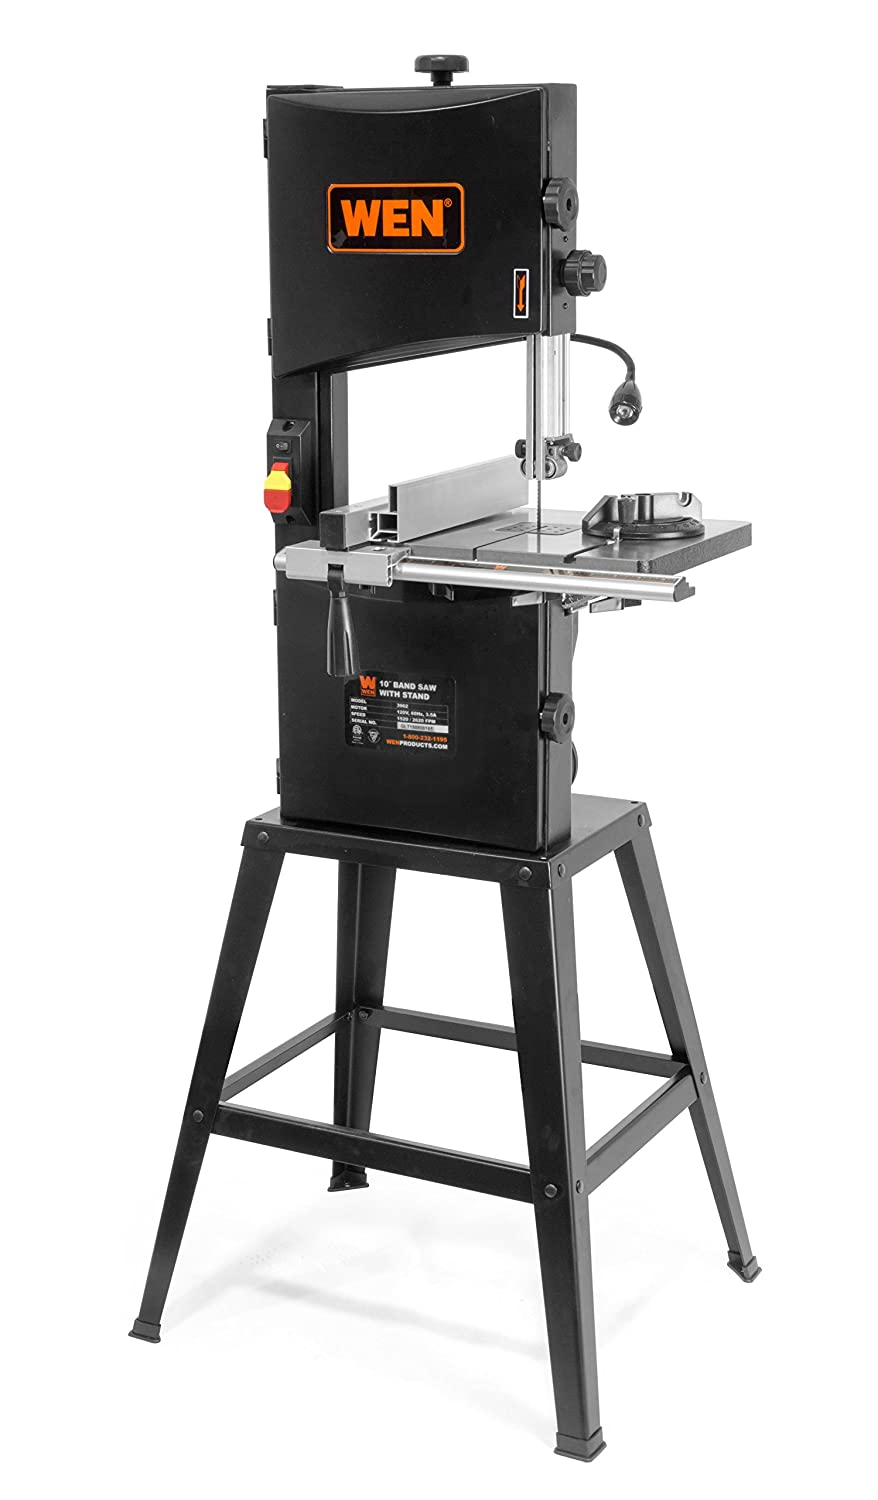 1. WEN 3962 Two-Speed Benchtop Band Saw